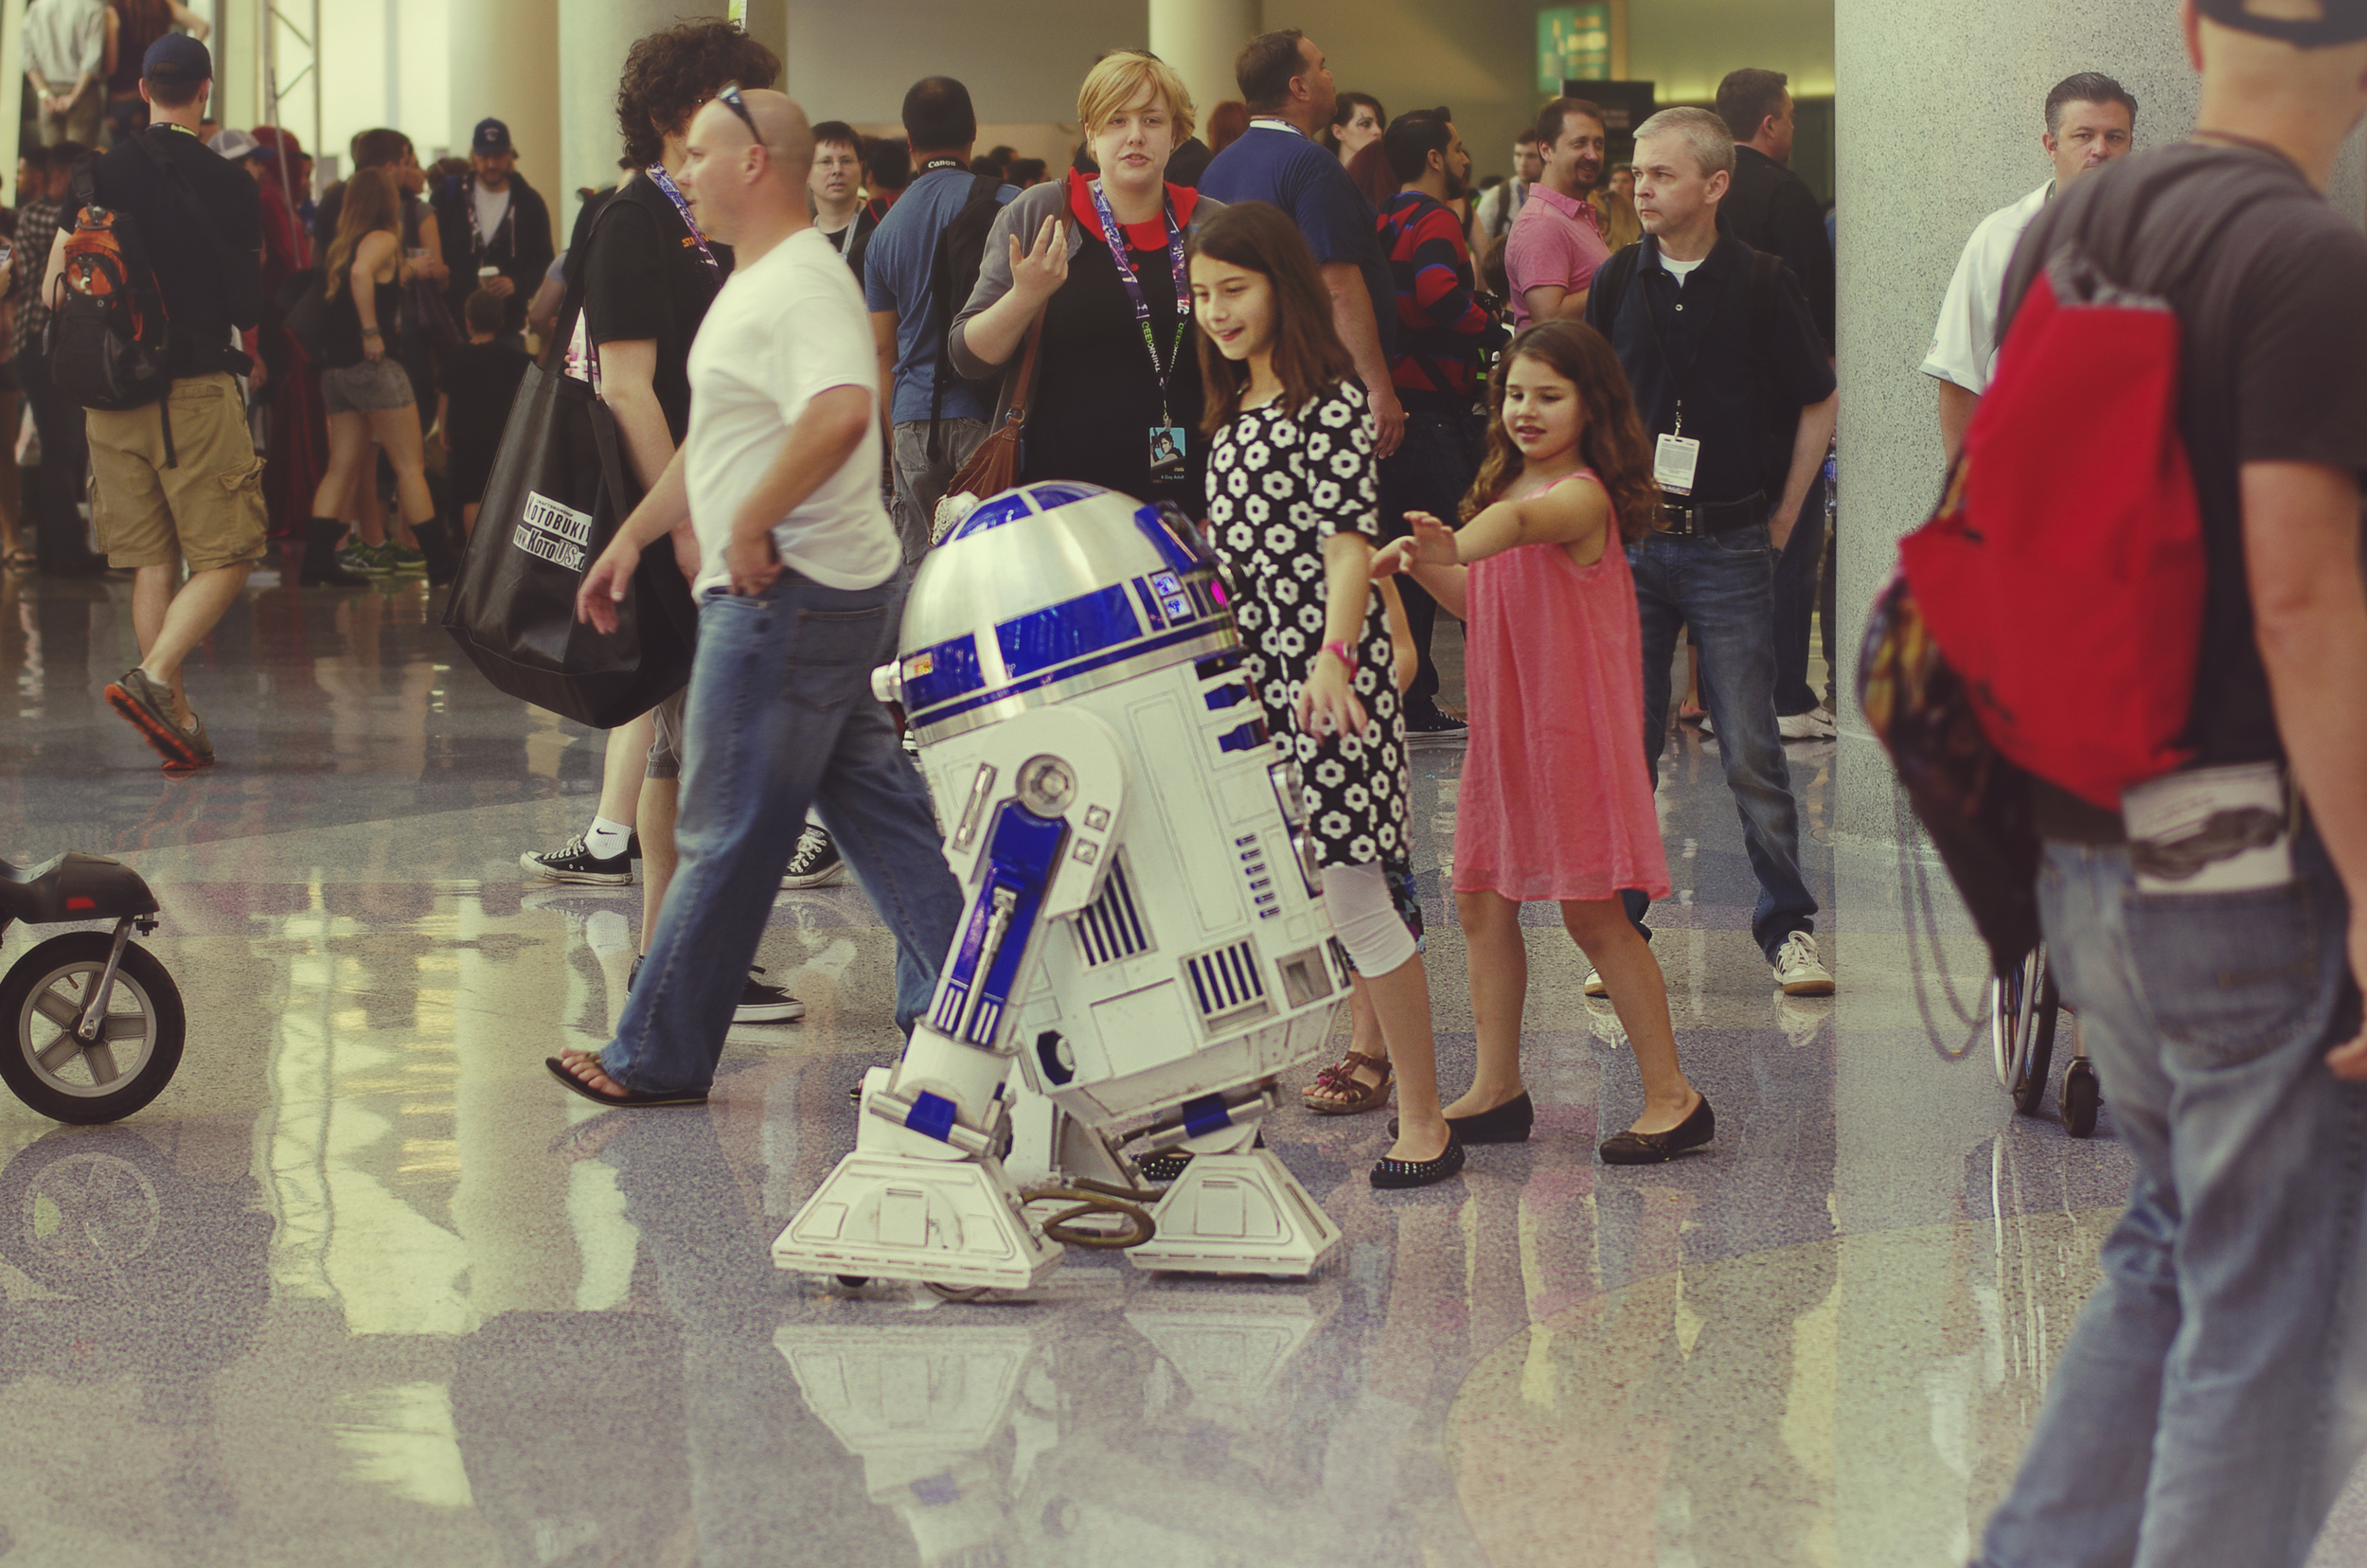 R2-D2 casually strolling around the convention.